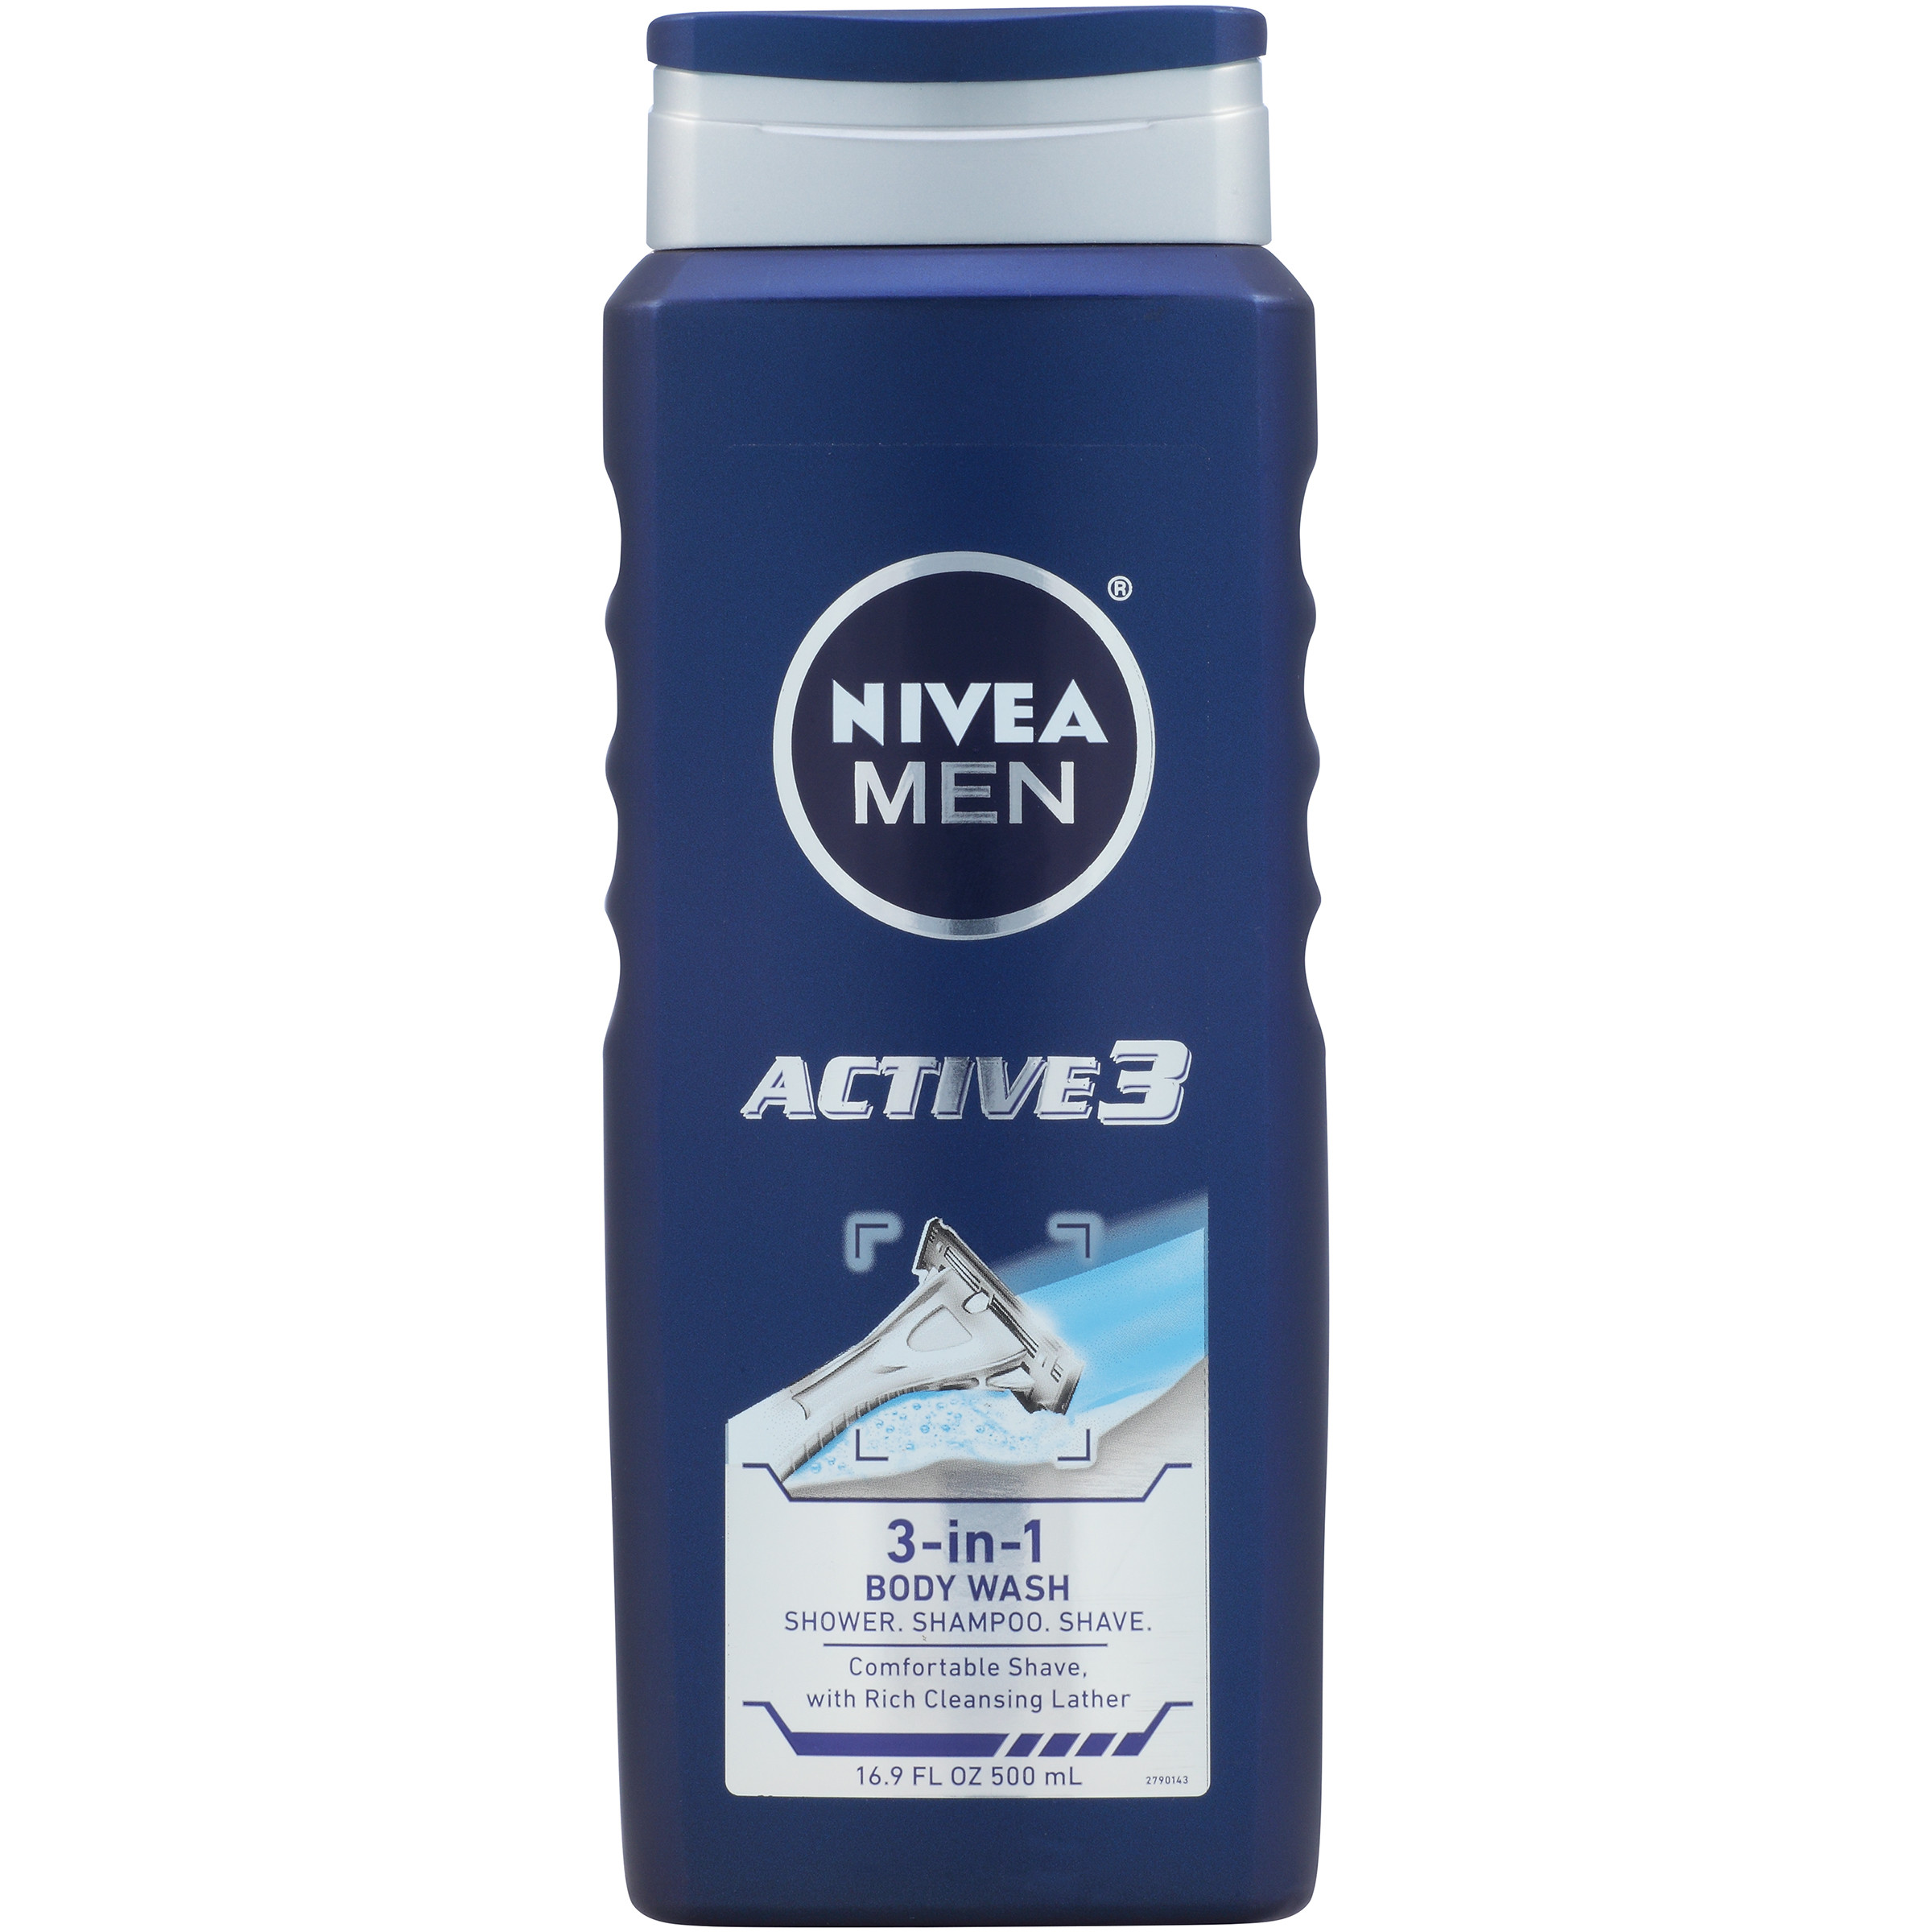 NIVEA Men Active3 3-in-1 Body Wash 16.9 fl. oz.